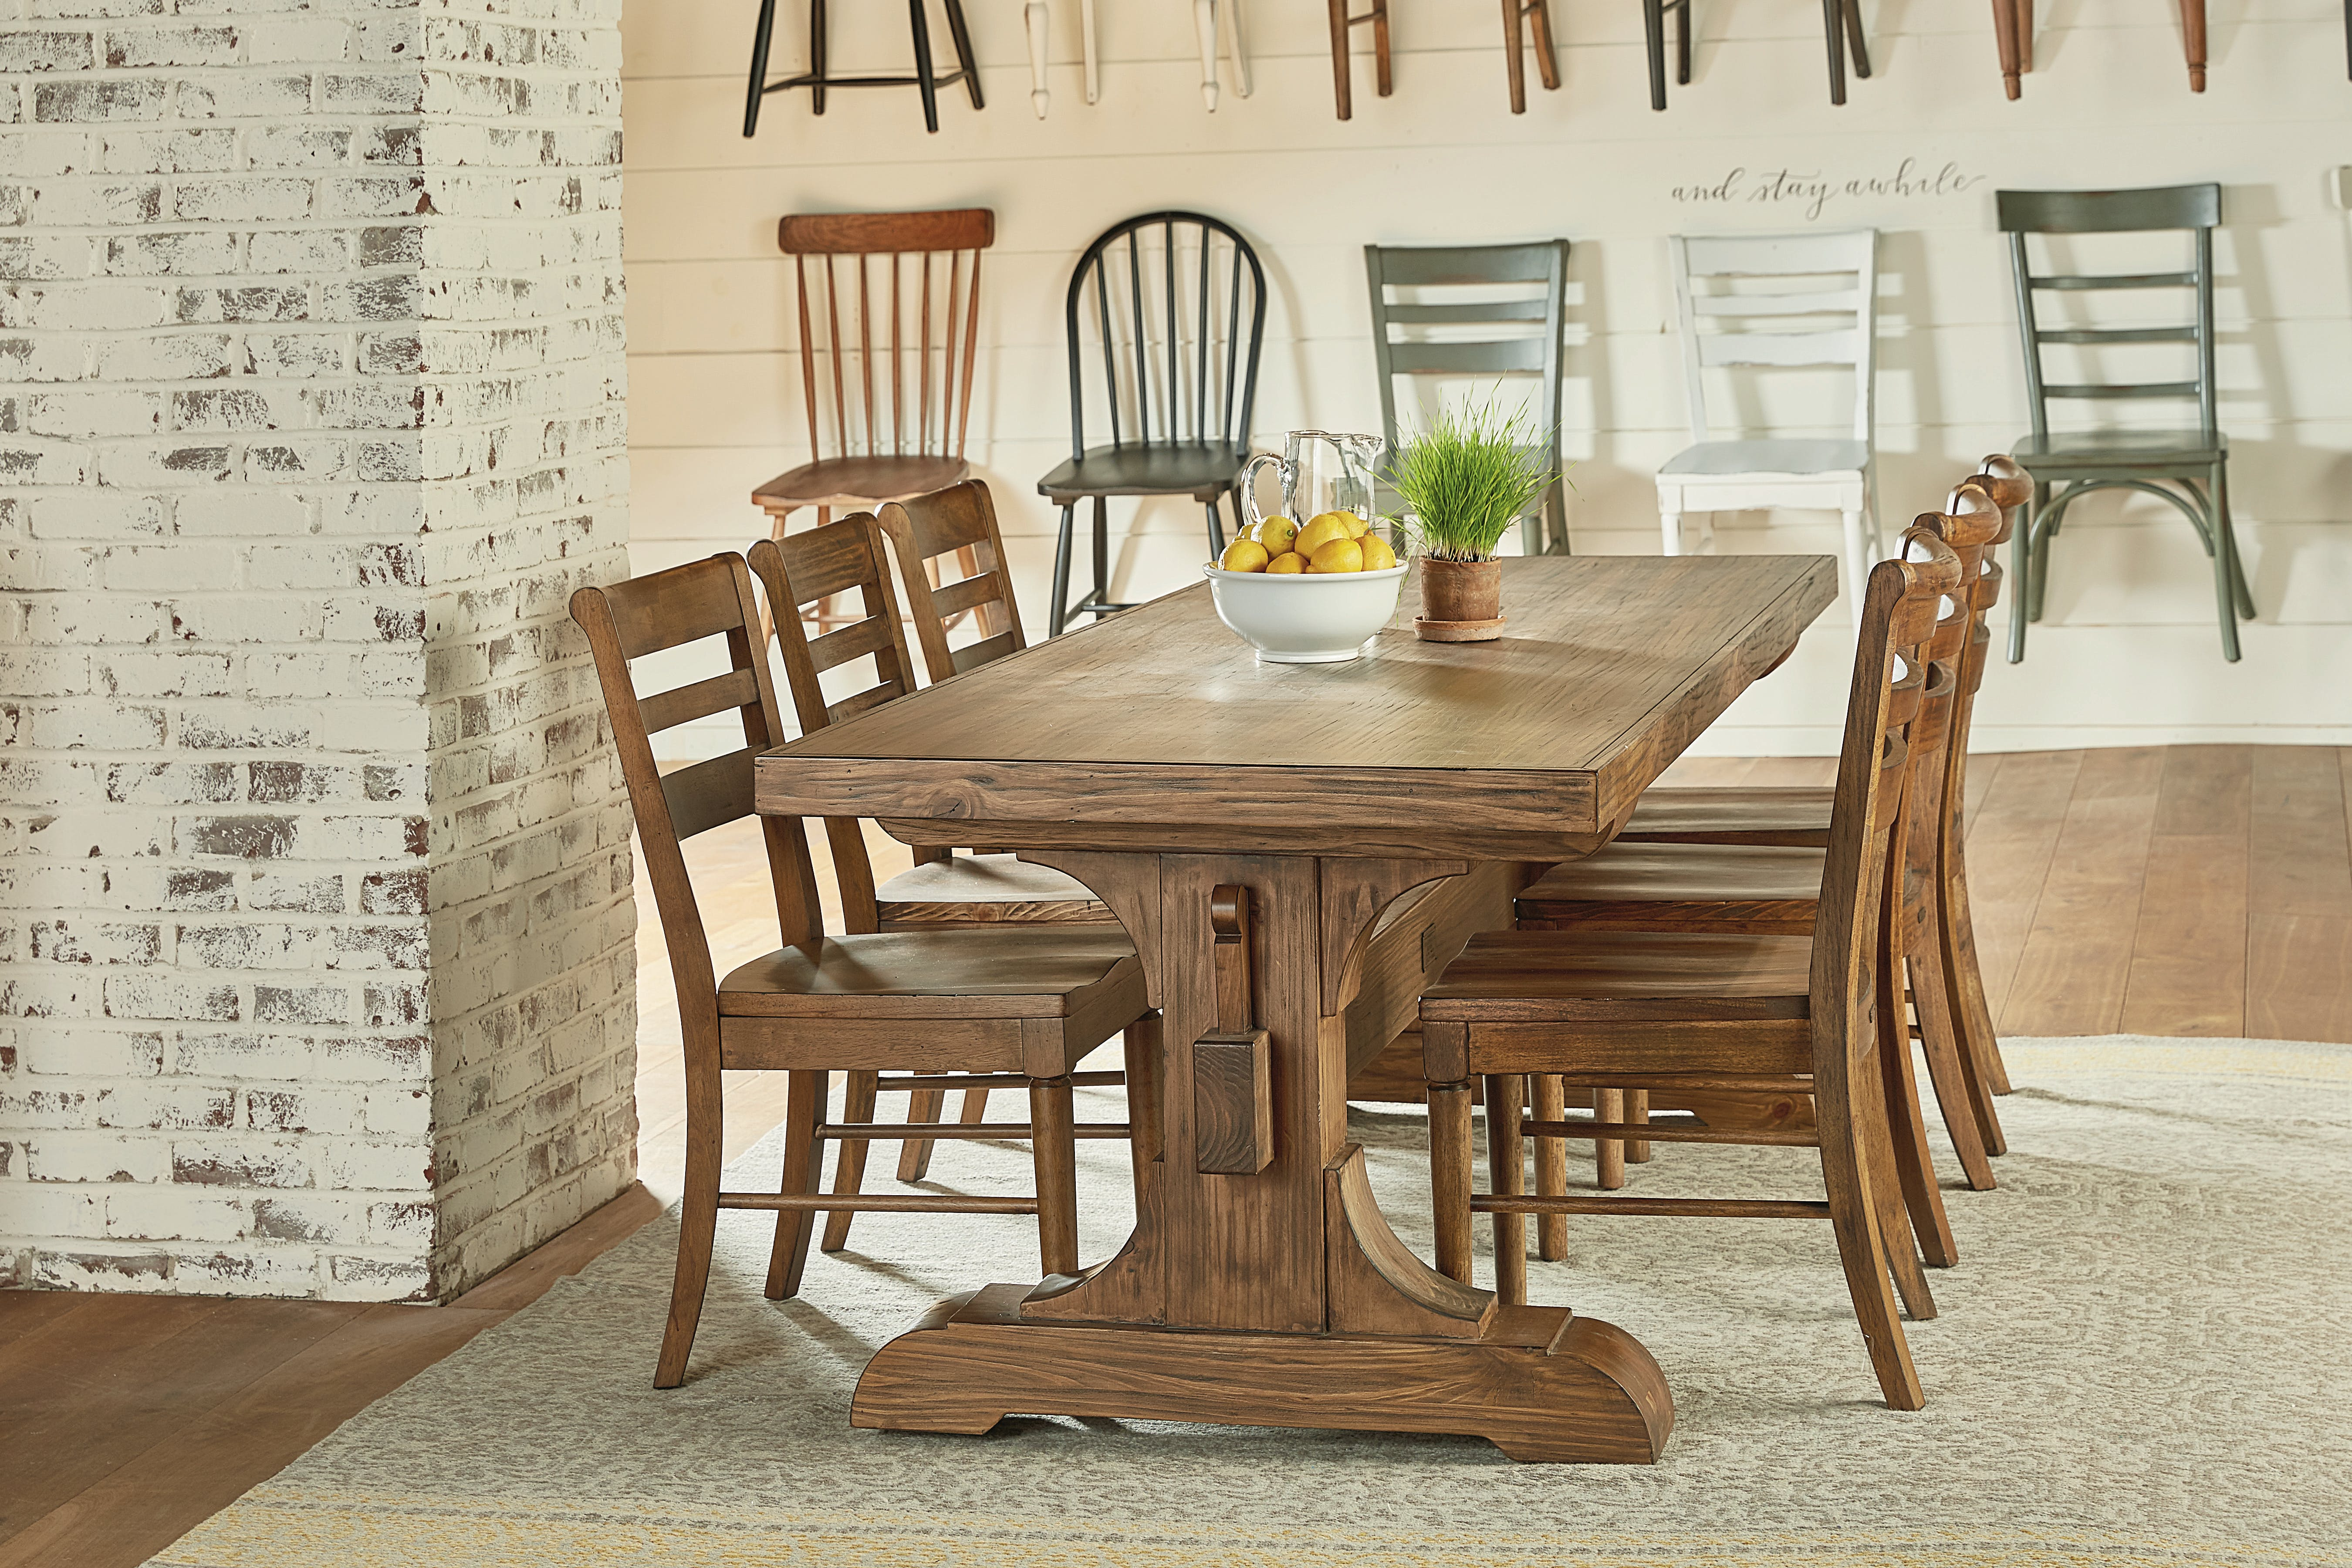 Magnolia Home Dining Room KEYED TRESTLE TABLE SETTING TABLE WITH 6